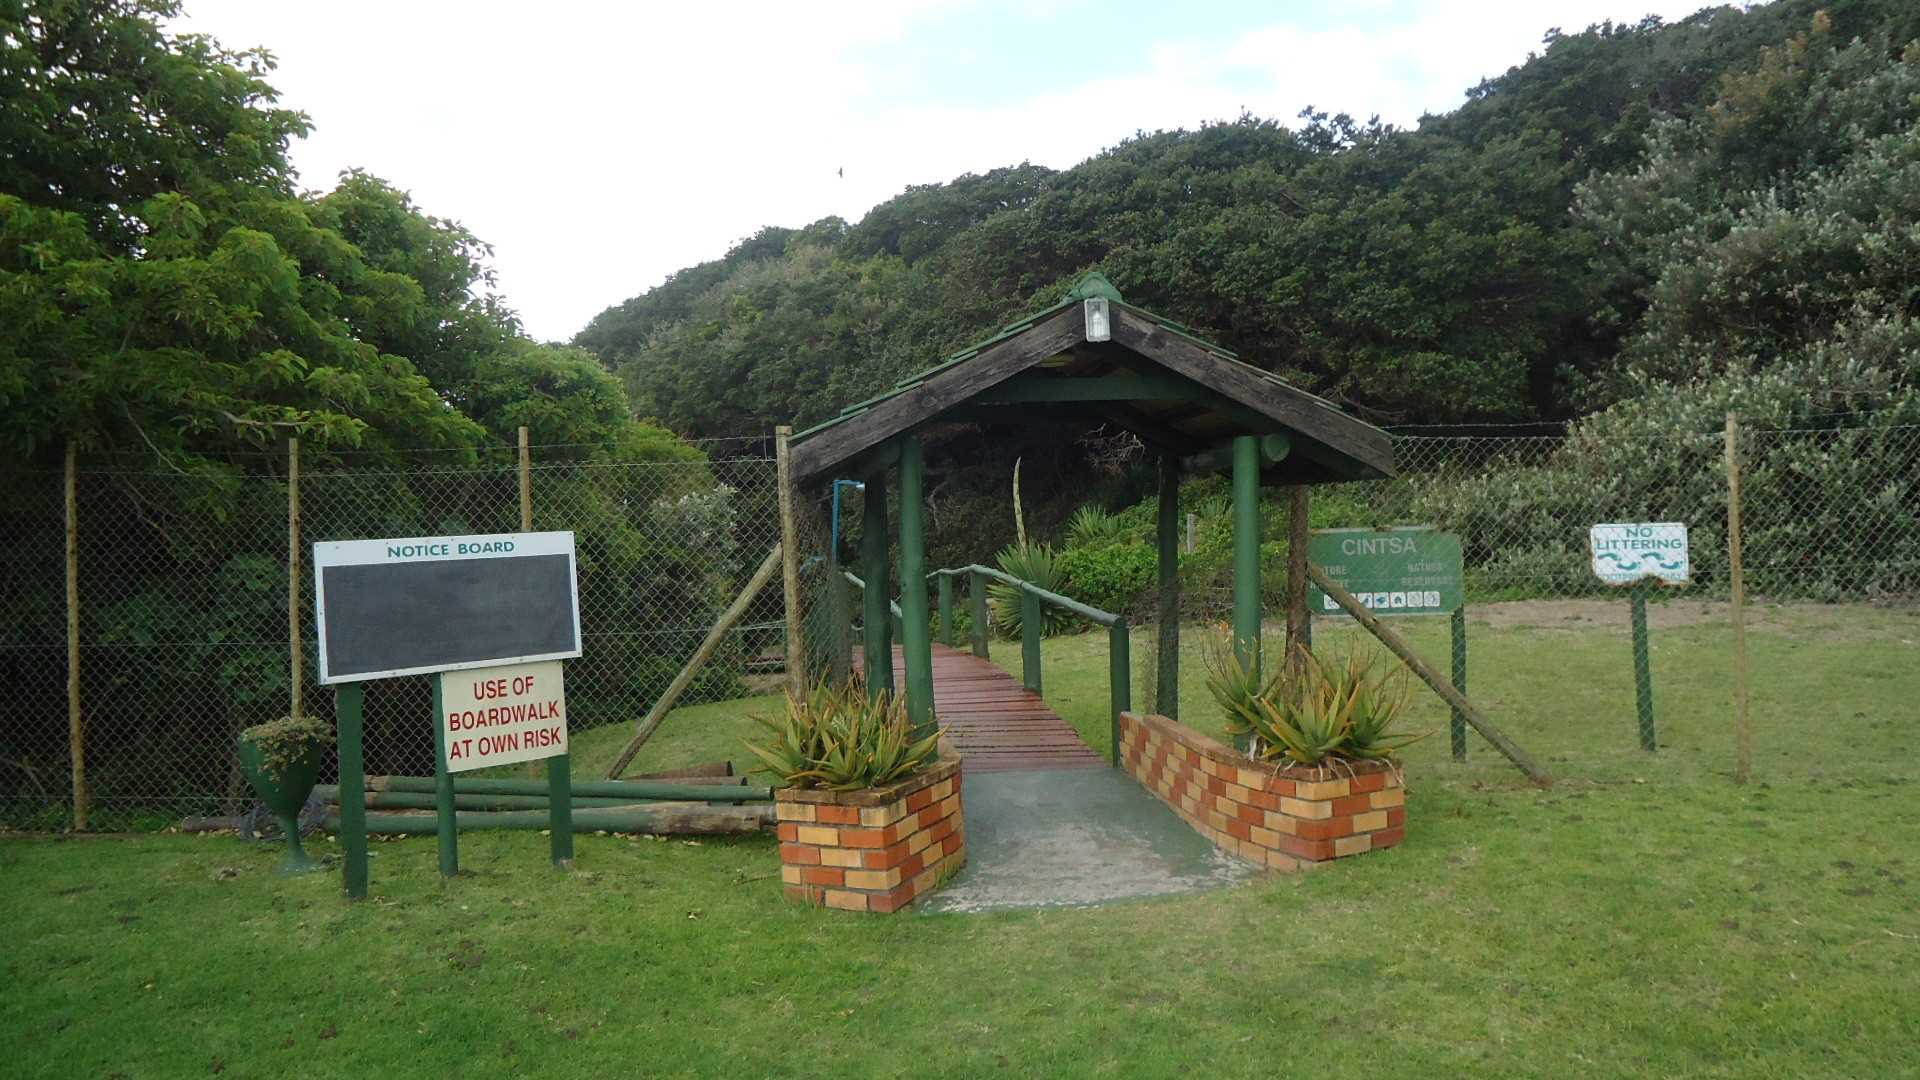 Entrance to walkway to access the beach